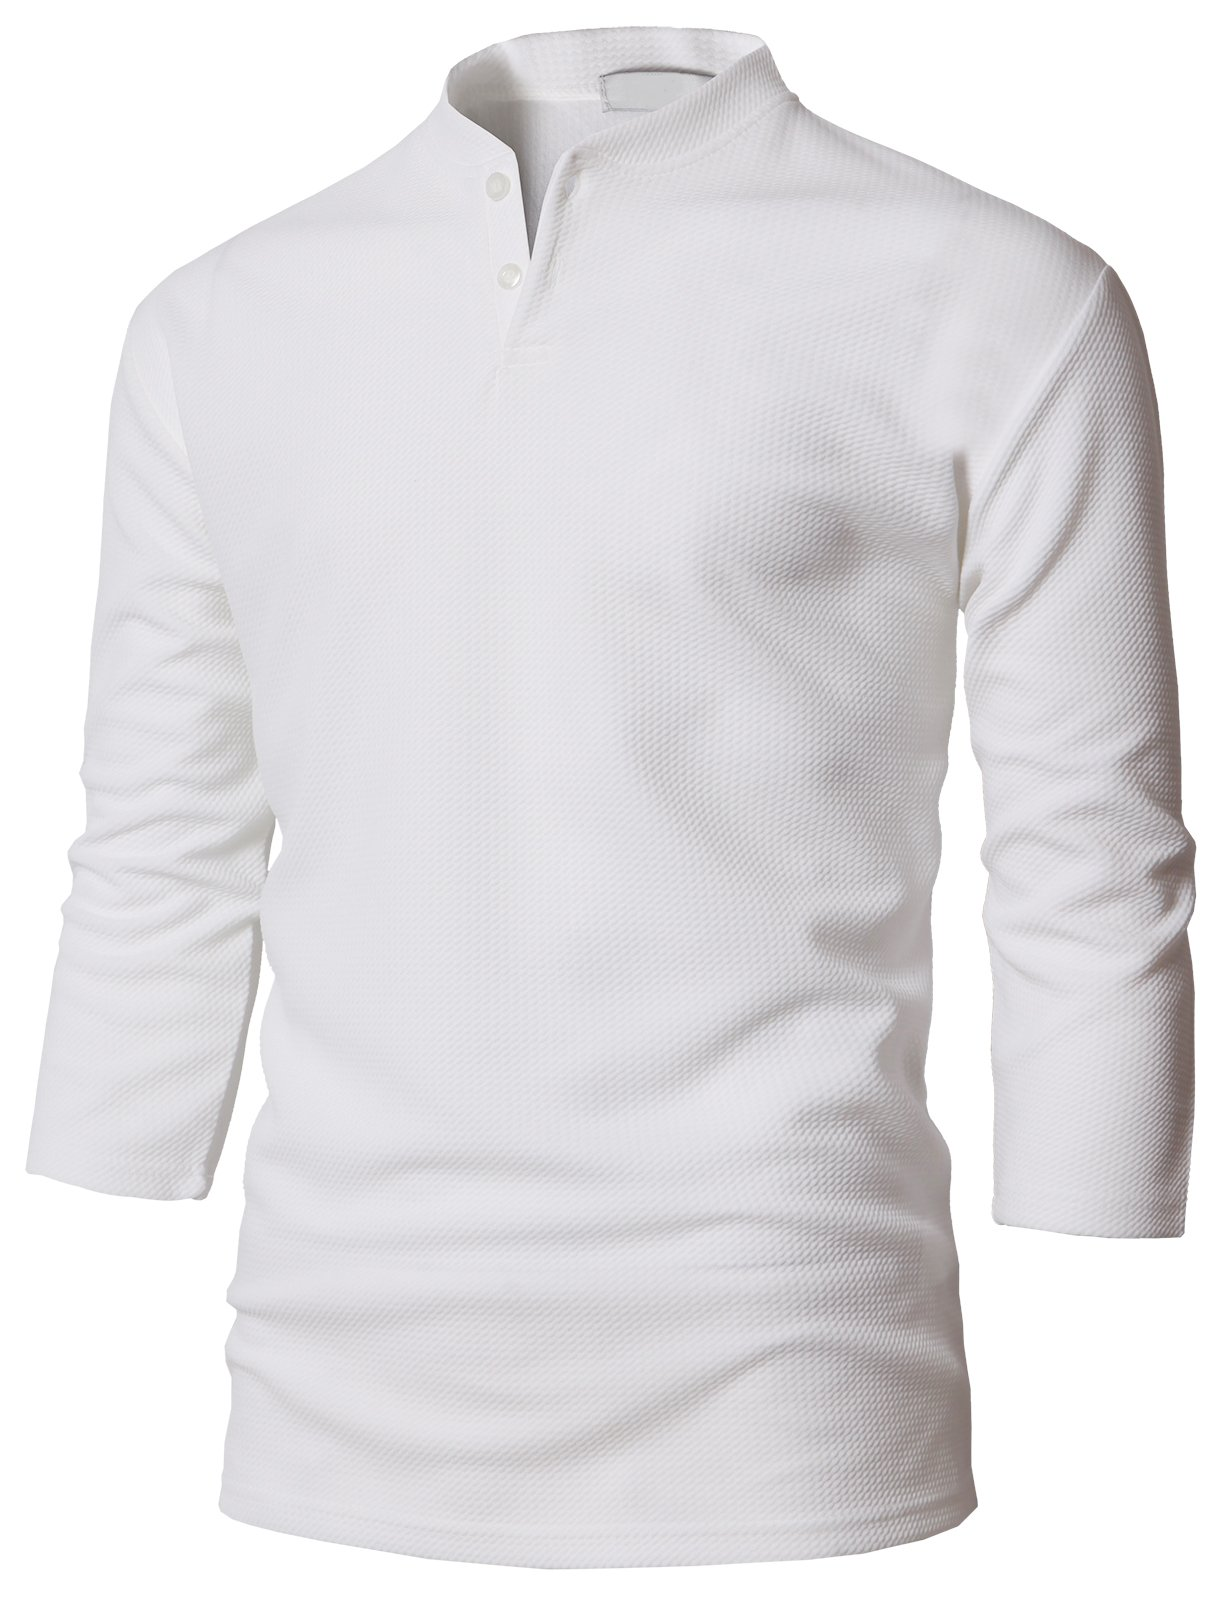 H2H Premium Mens Soft Feel 3/4 Sleeve Henley Shirt White US L/Asia XL (KMTTS0569)